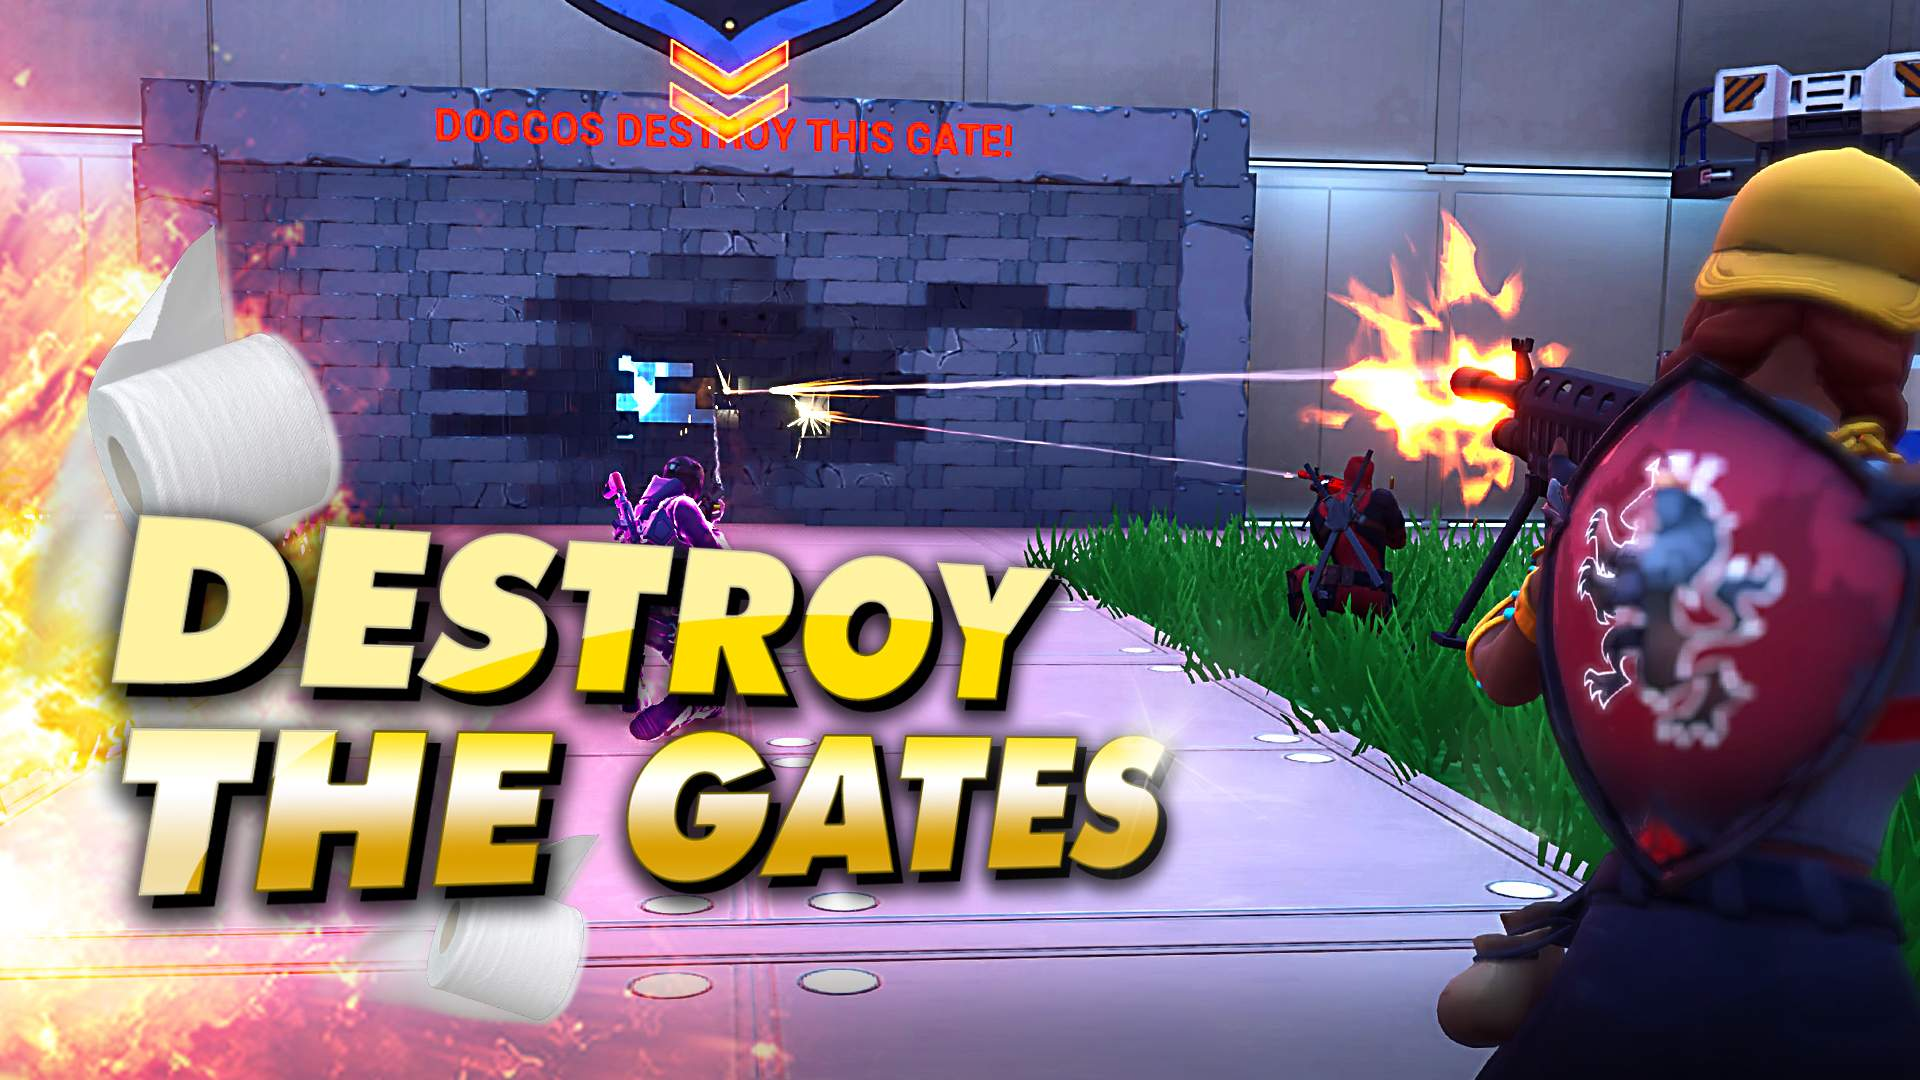 DESTROY THE GATES